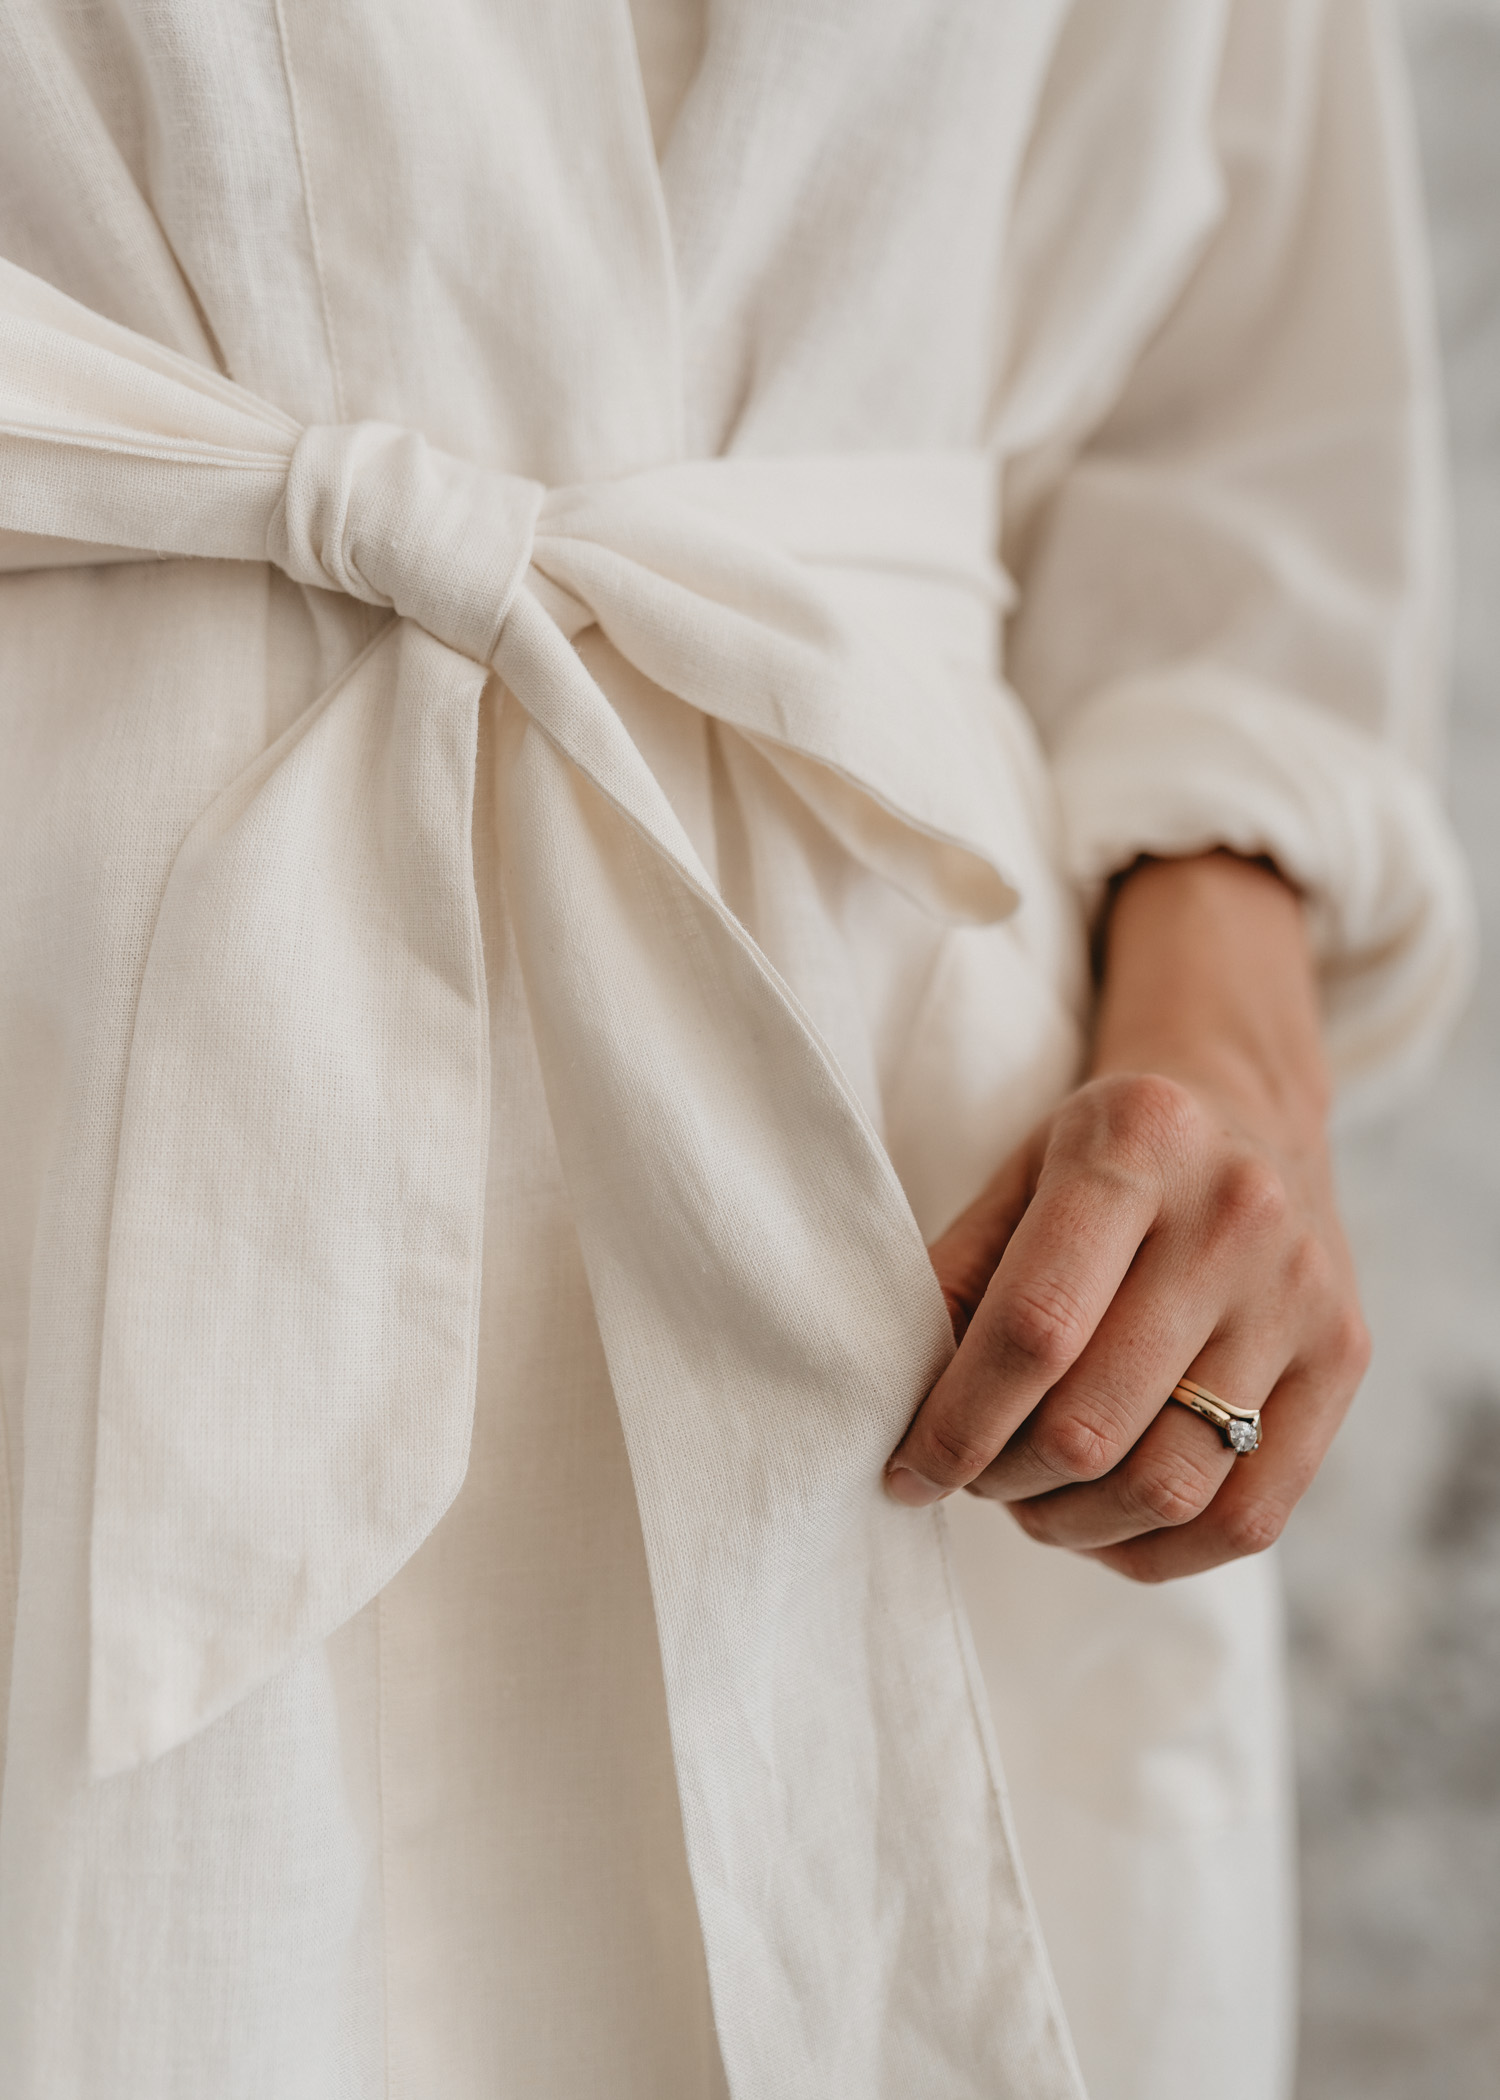 keira-mason-nowhere-and-everywhere-summer-dressing-gown-details.jpg